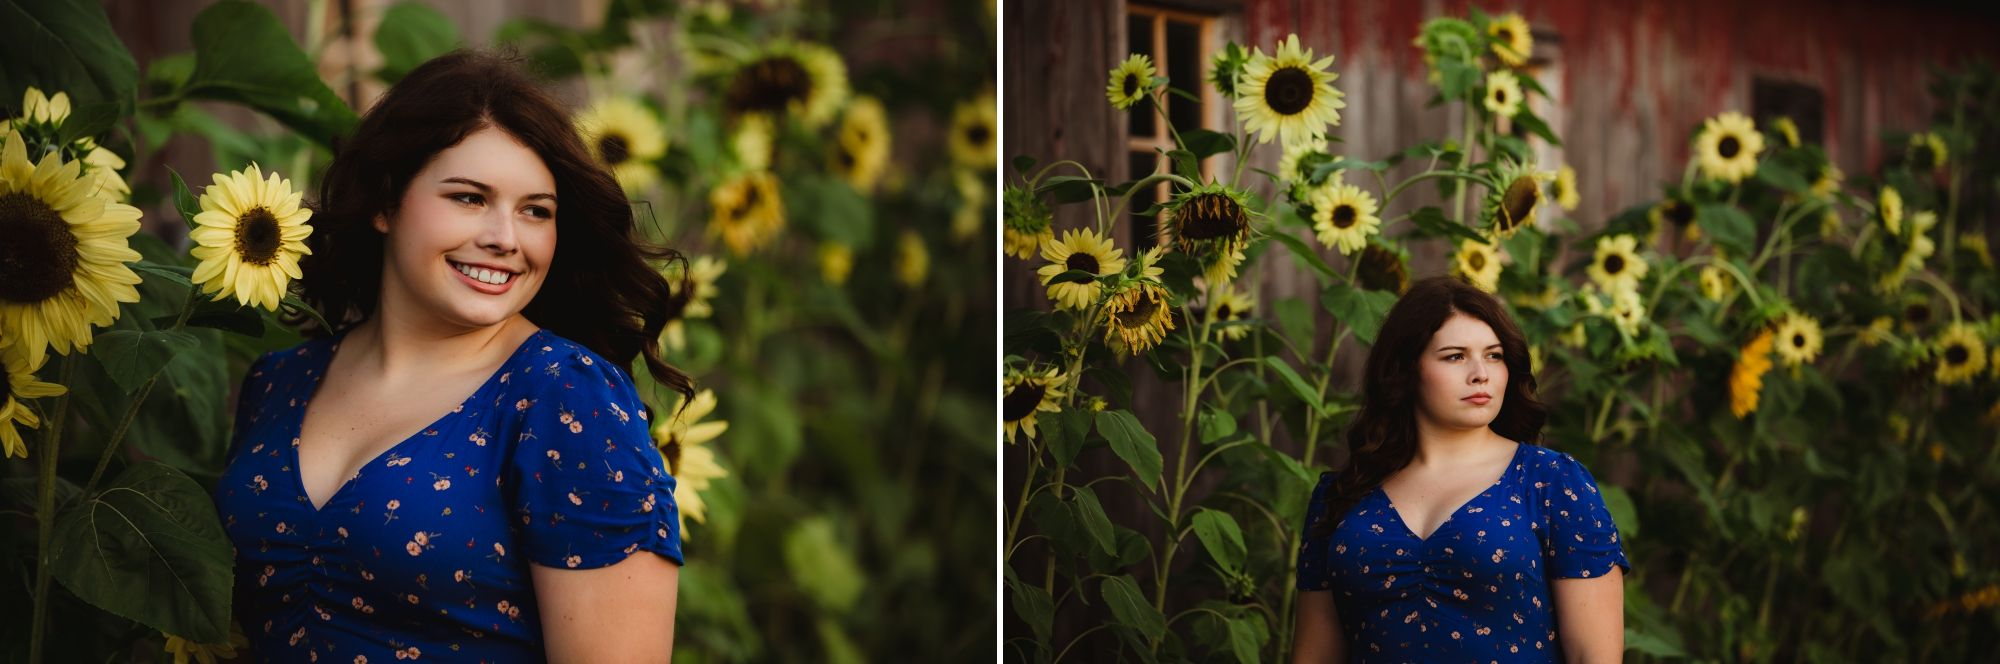 High school senior girl with dark hair and dark eyes wearing a blue shirt standing in sunflowers.